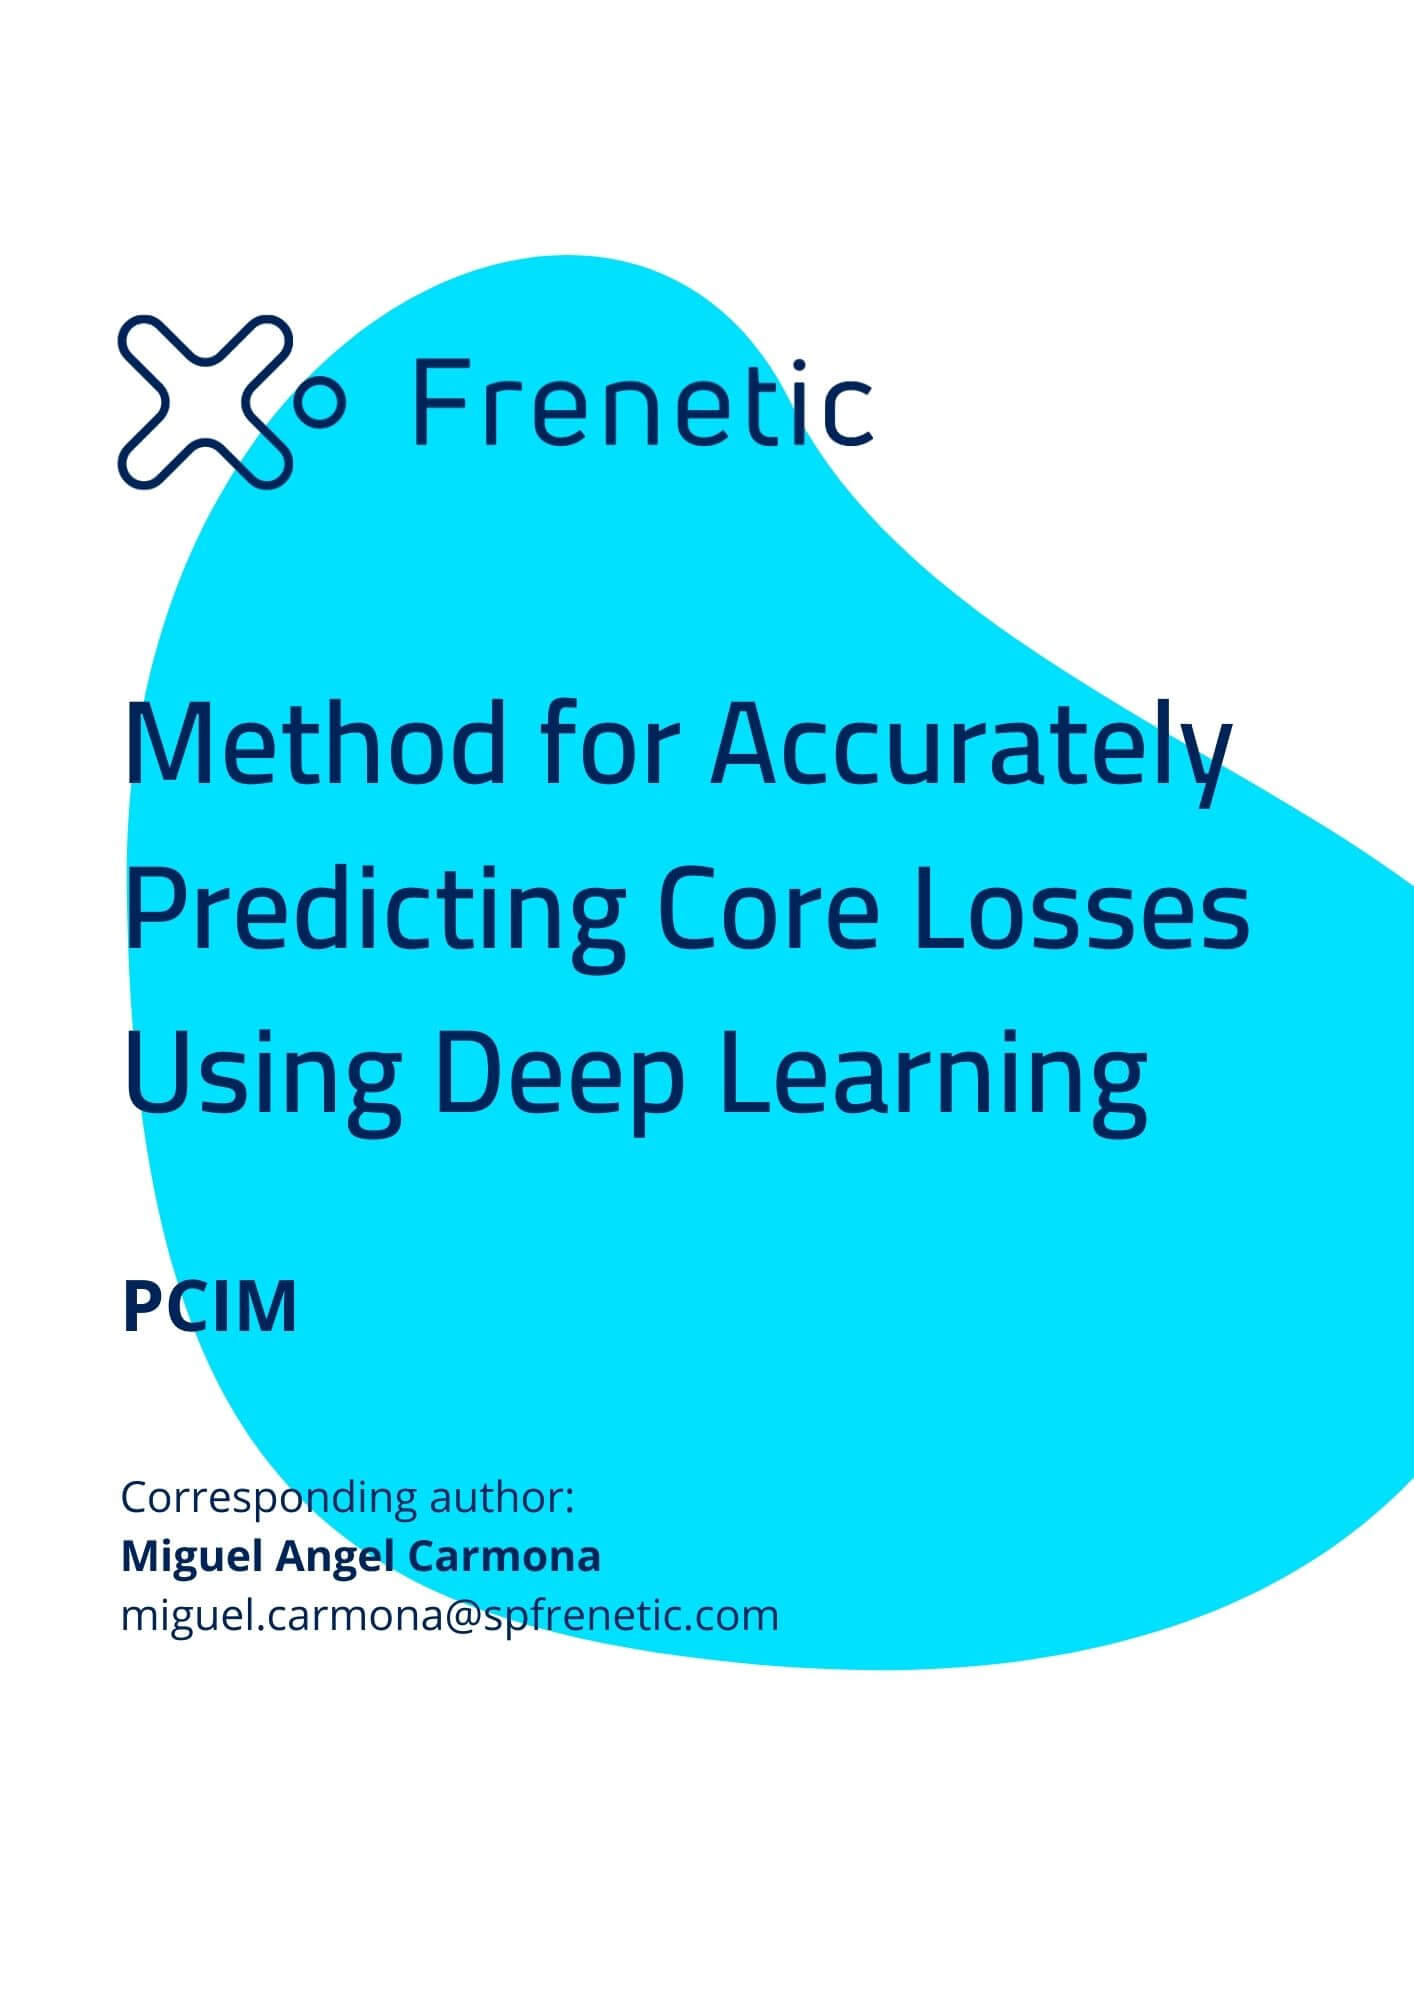 Method for Accurately Predicting Core Losses Using Deep Learning